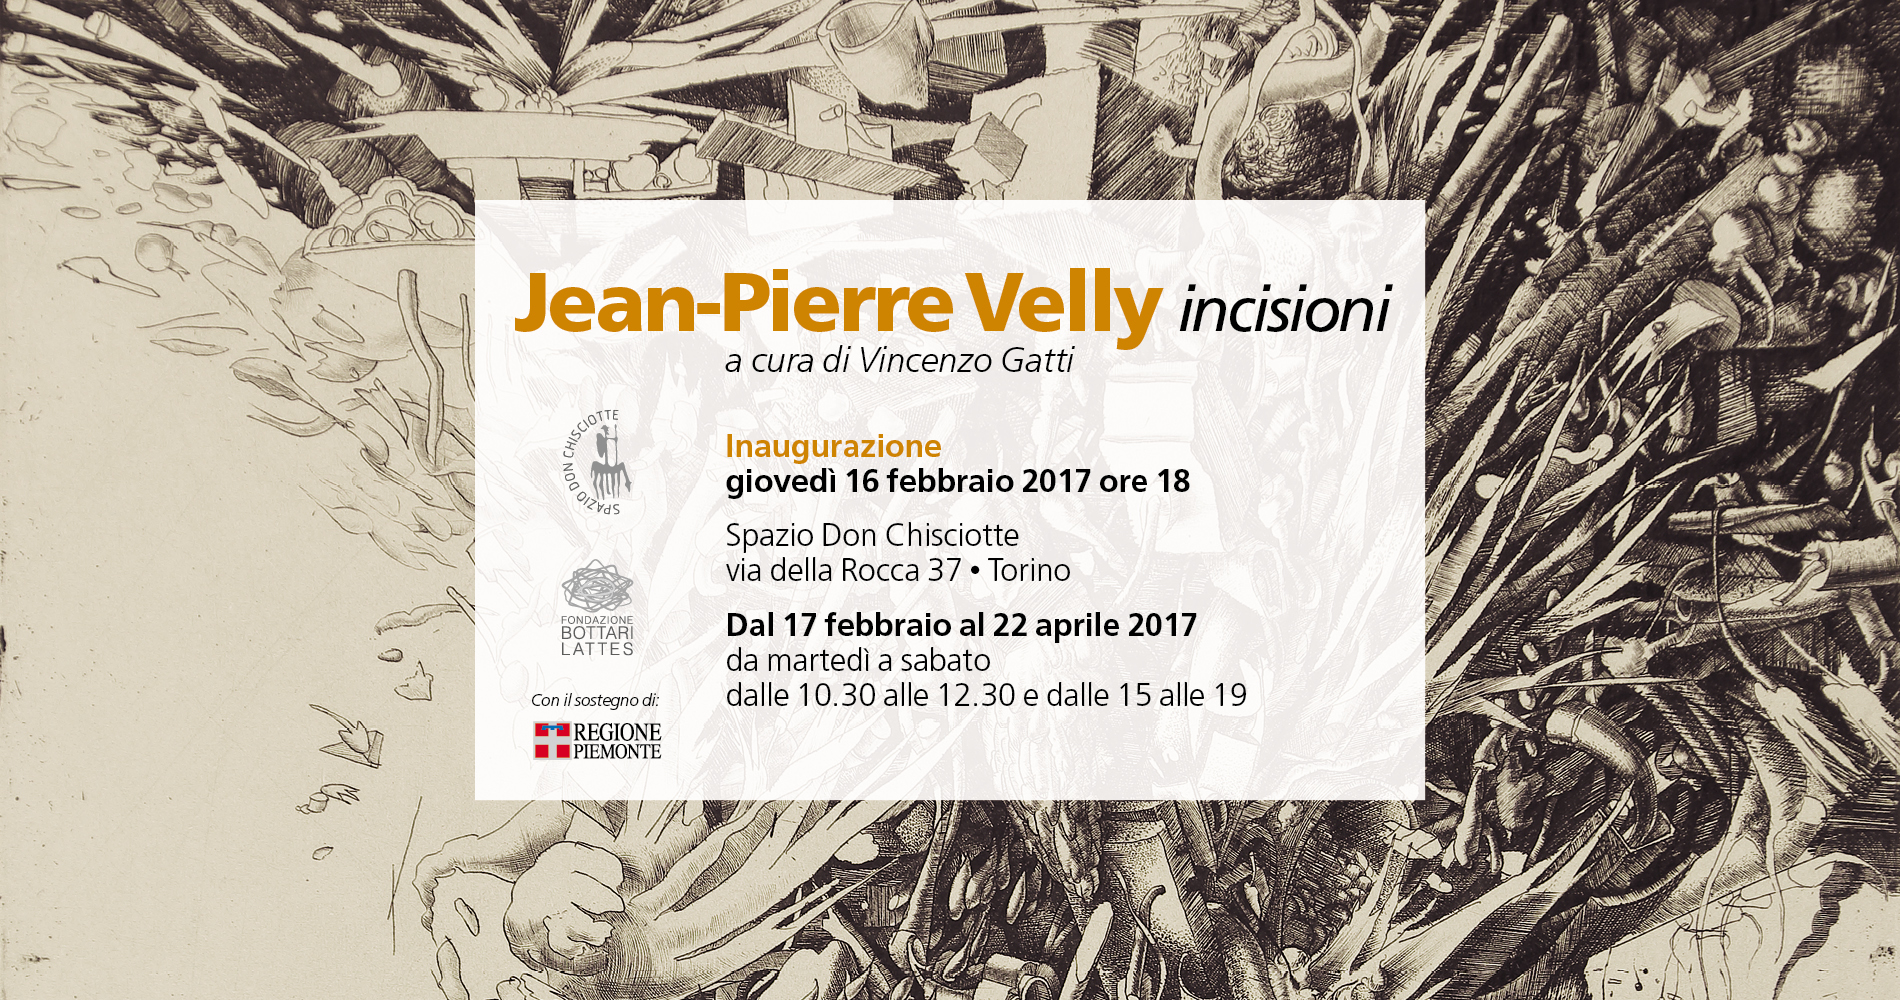 Jean-Pierre Velly incisioni